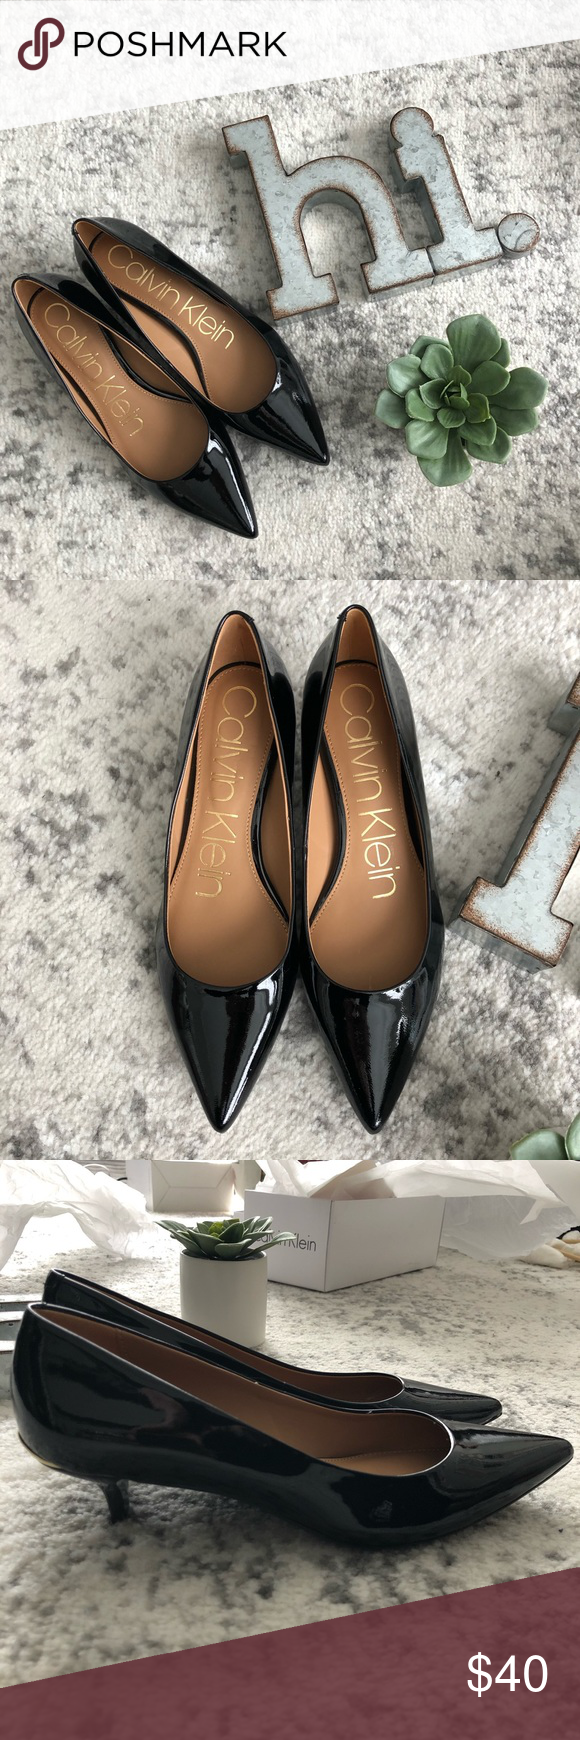 New Calvin Klein Pointed Toe Kitten Heel Size 6 Kitten Heels Shoes Women Heels Calvin Klein Shoes